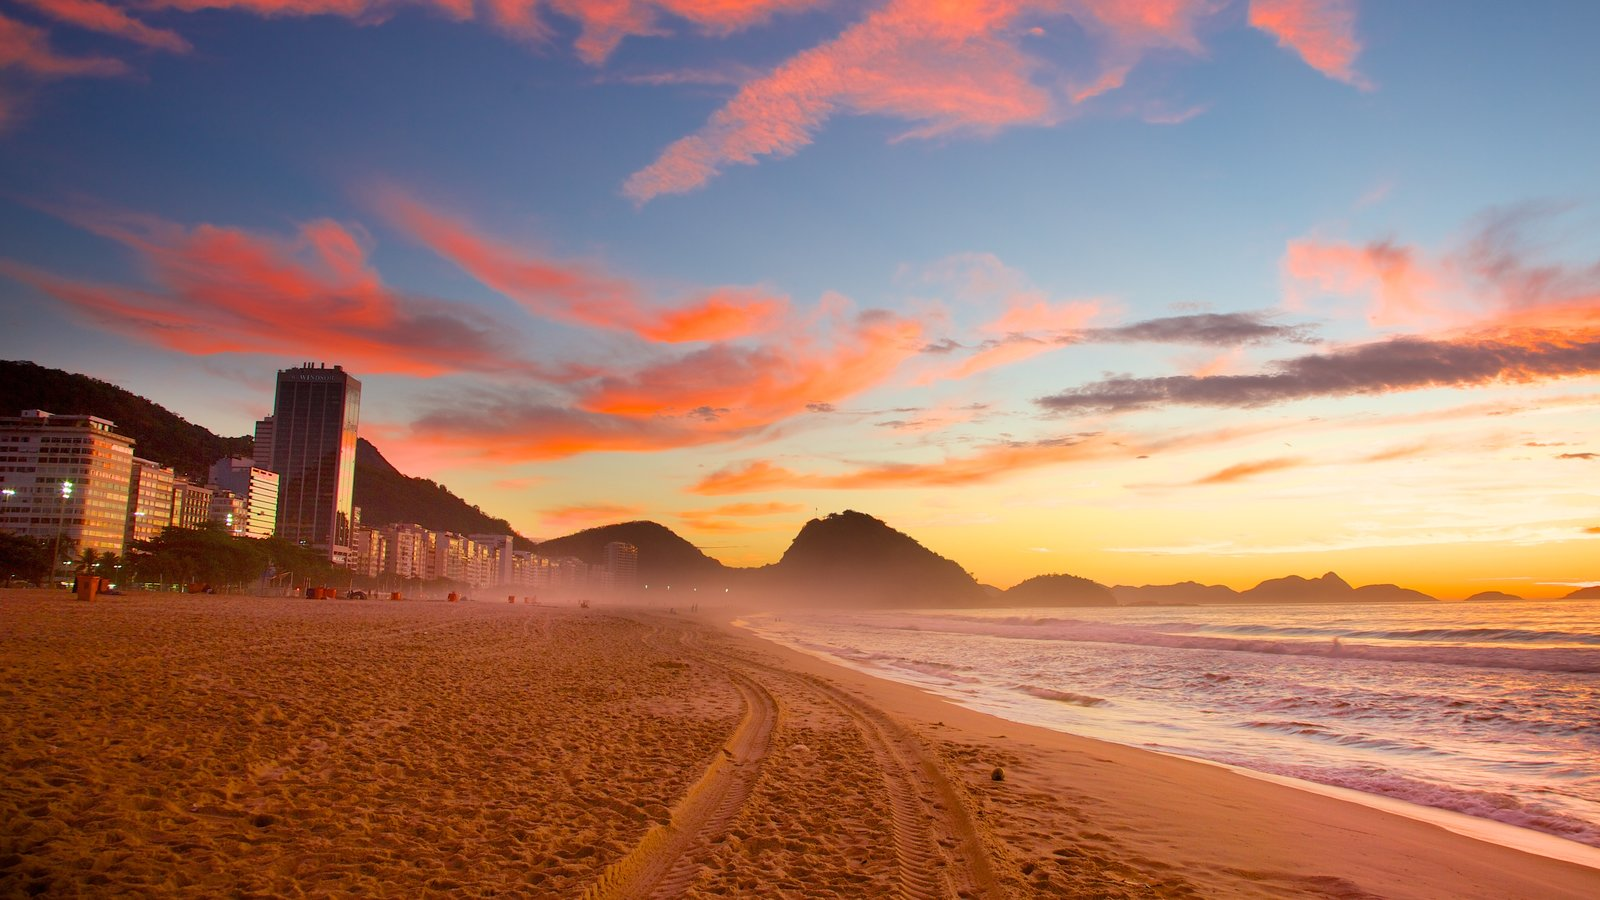 Copacabana Beach featuring a beach, general coastal views and a sunset